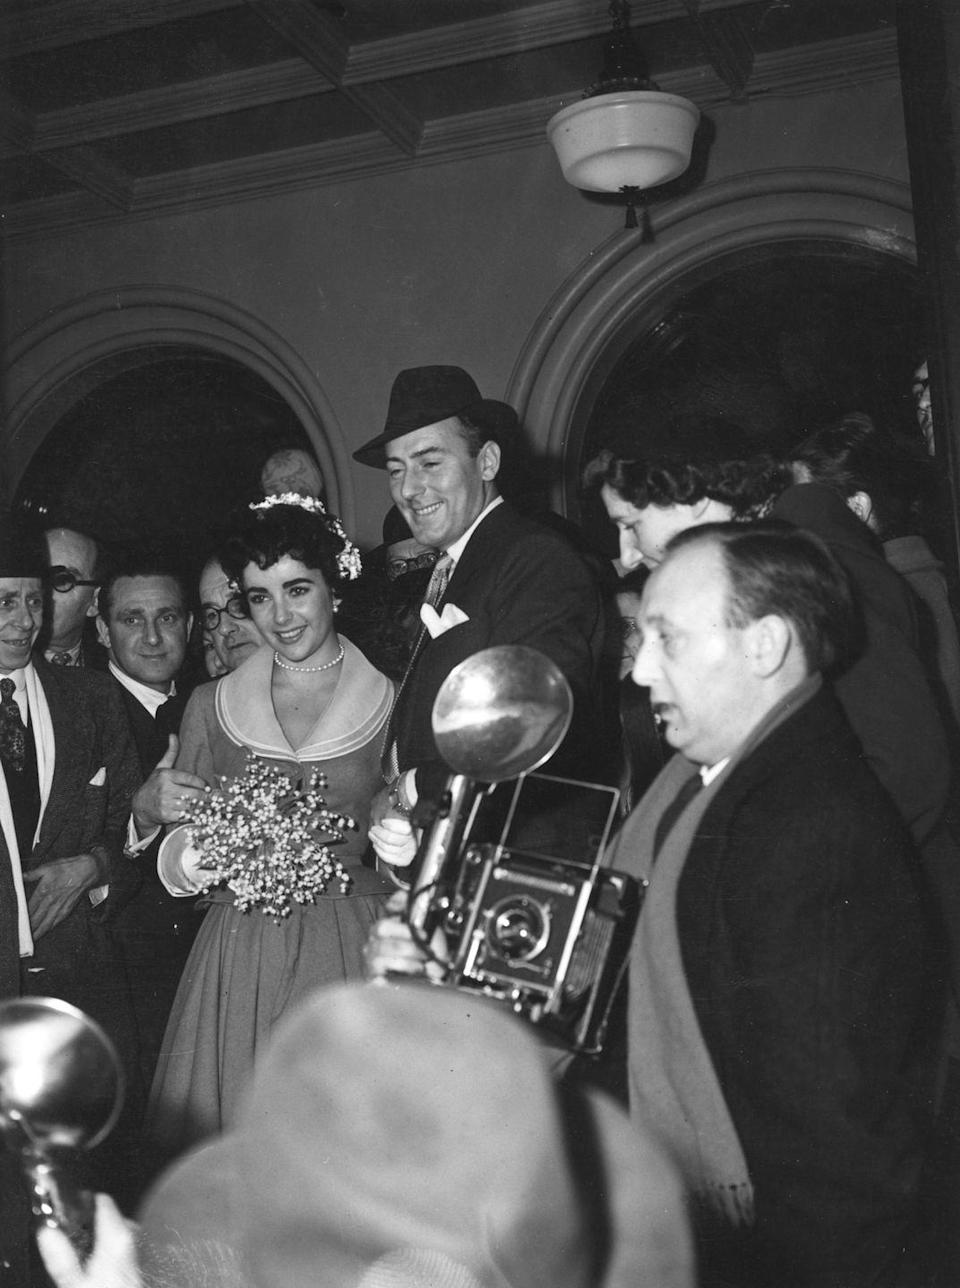 <p>Elizabeth Taylor's second wedding was less grand than her first. Wearing a simple belted dress and flowers in her chignon, Elizabeth and Michael Wilding got married at Caxton Hall in London. </p>